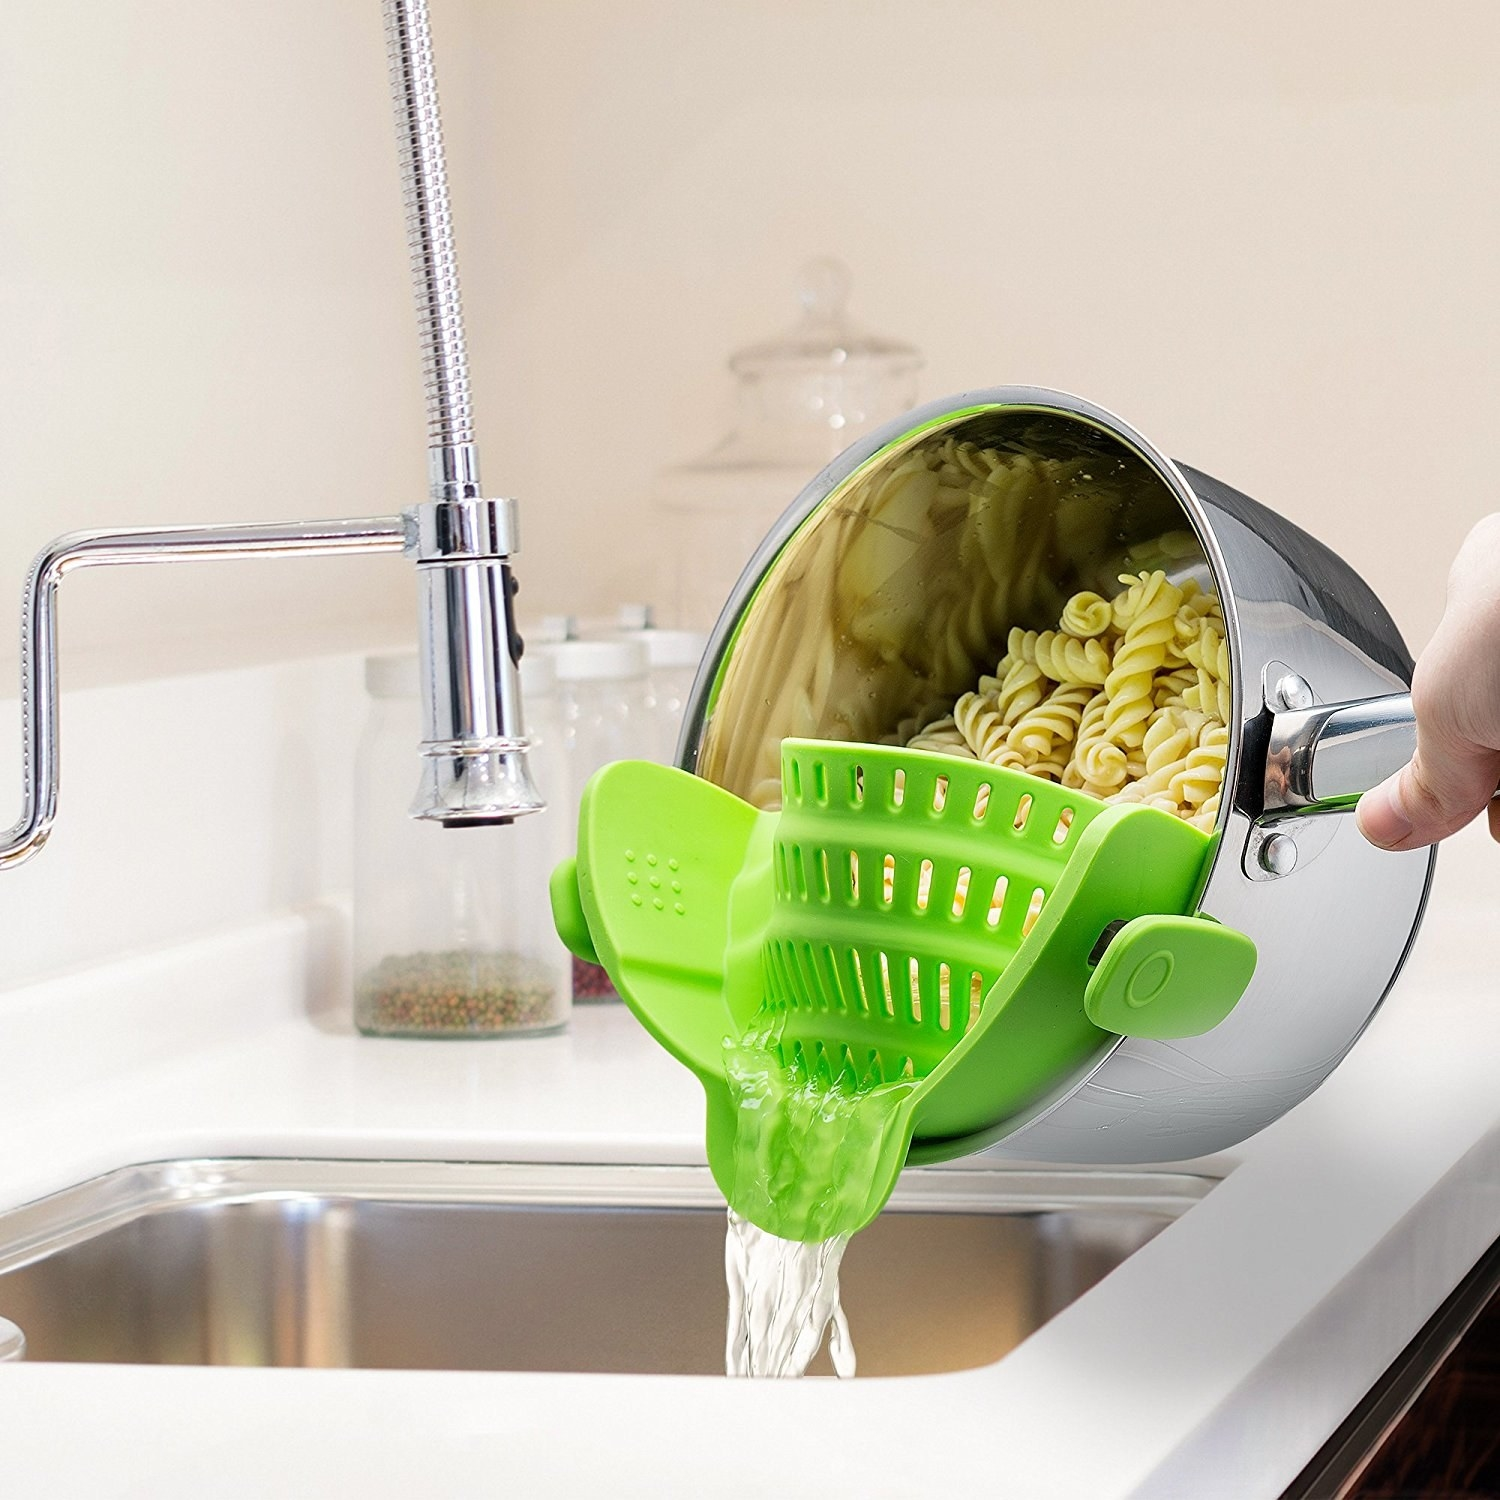 The green strainer attached to a pot, which allows the water to drain while keeping pasta in place